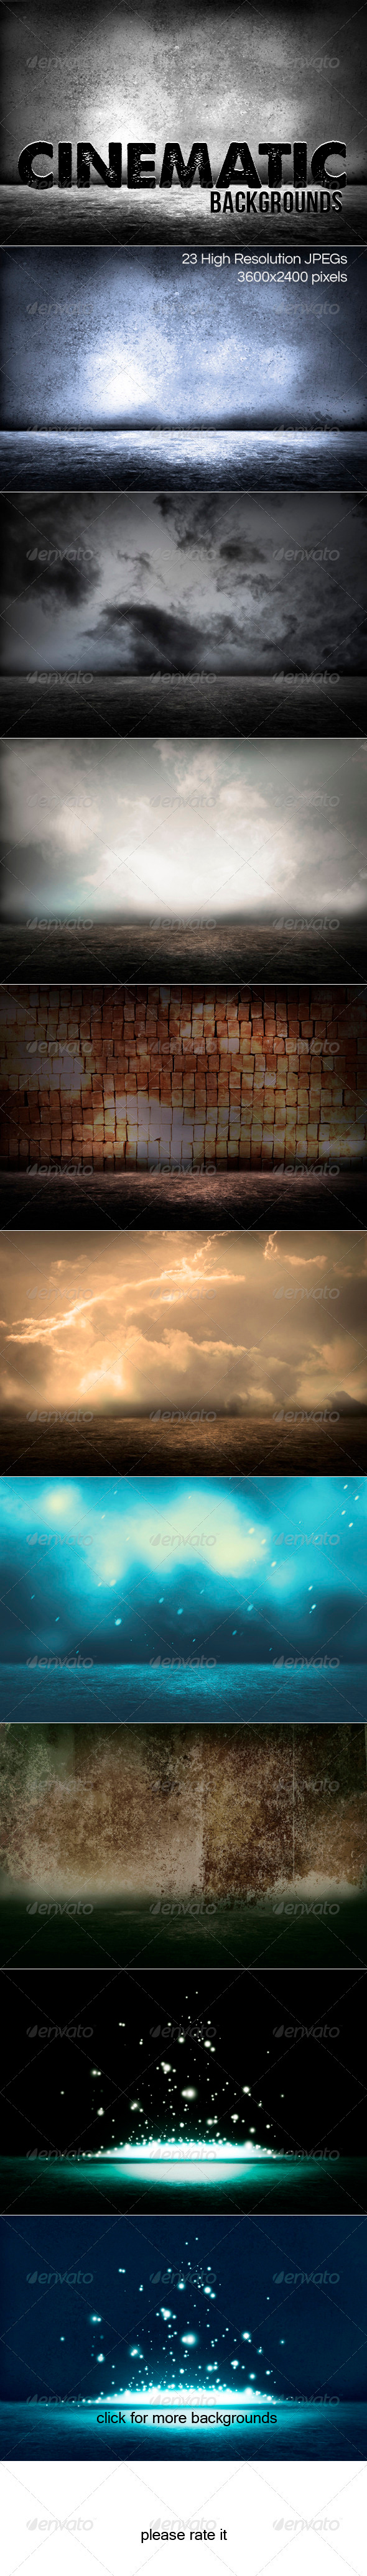 Cinematic Backgrounds - 3D Backgrounds